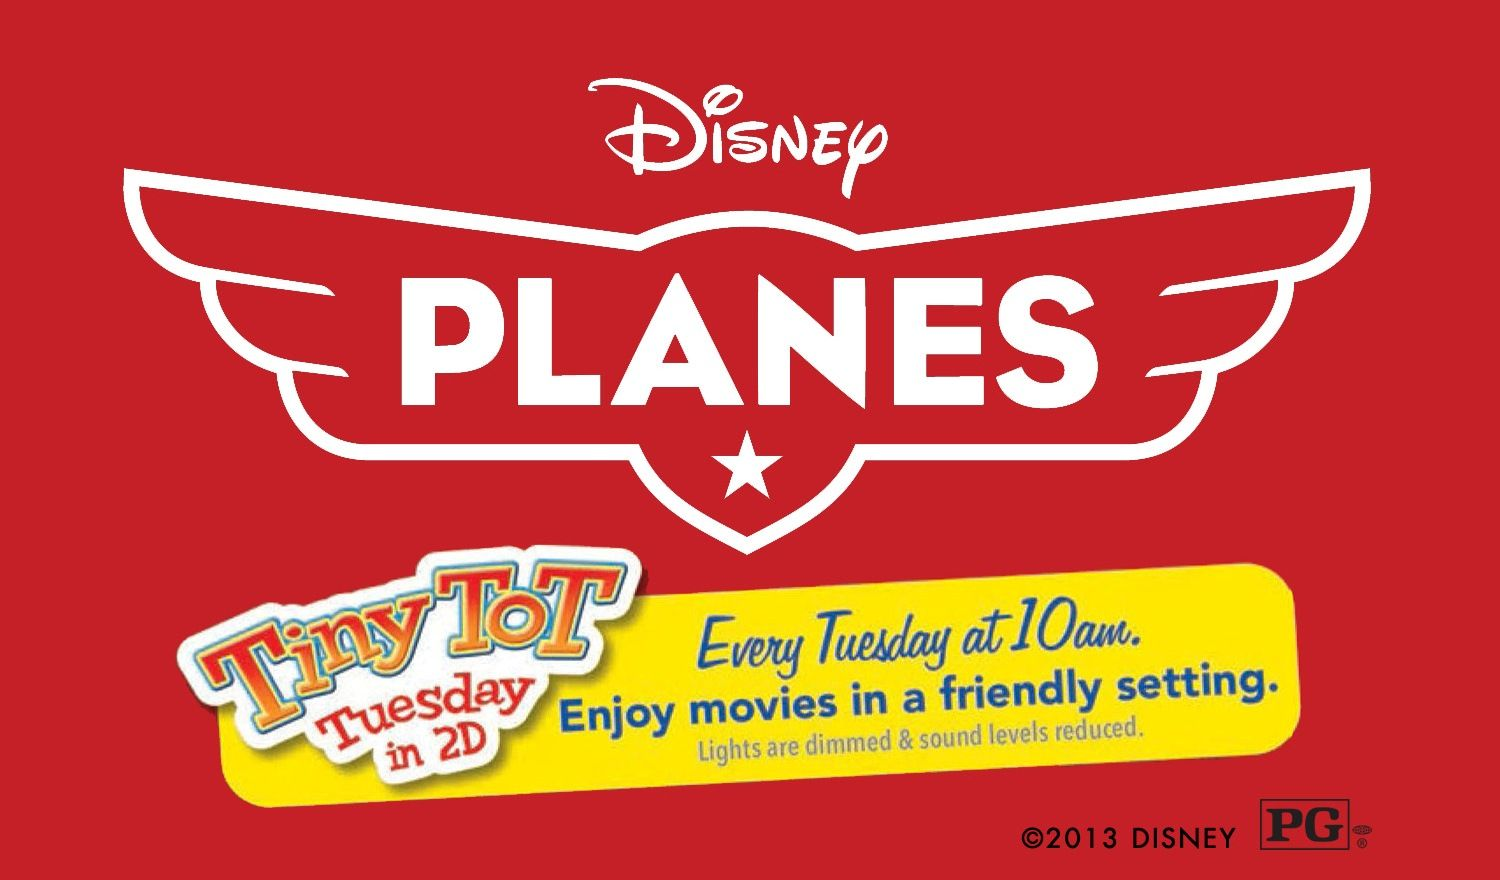 Come see Disney's Planes in 2D during Tiny Tot Tuesdays  Lights are dimmed & sound levels reduced.  Every Tuesday at 10am  August 13, 20, 27 & September 3, 10, 17  For tickets, call 1-800-DISNEY6 or go to www.elcapitantickets.com